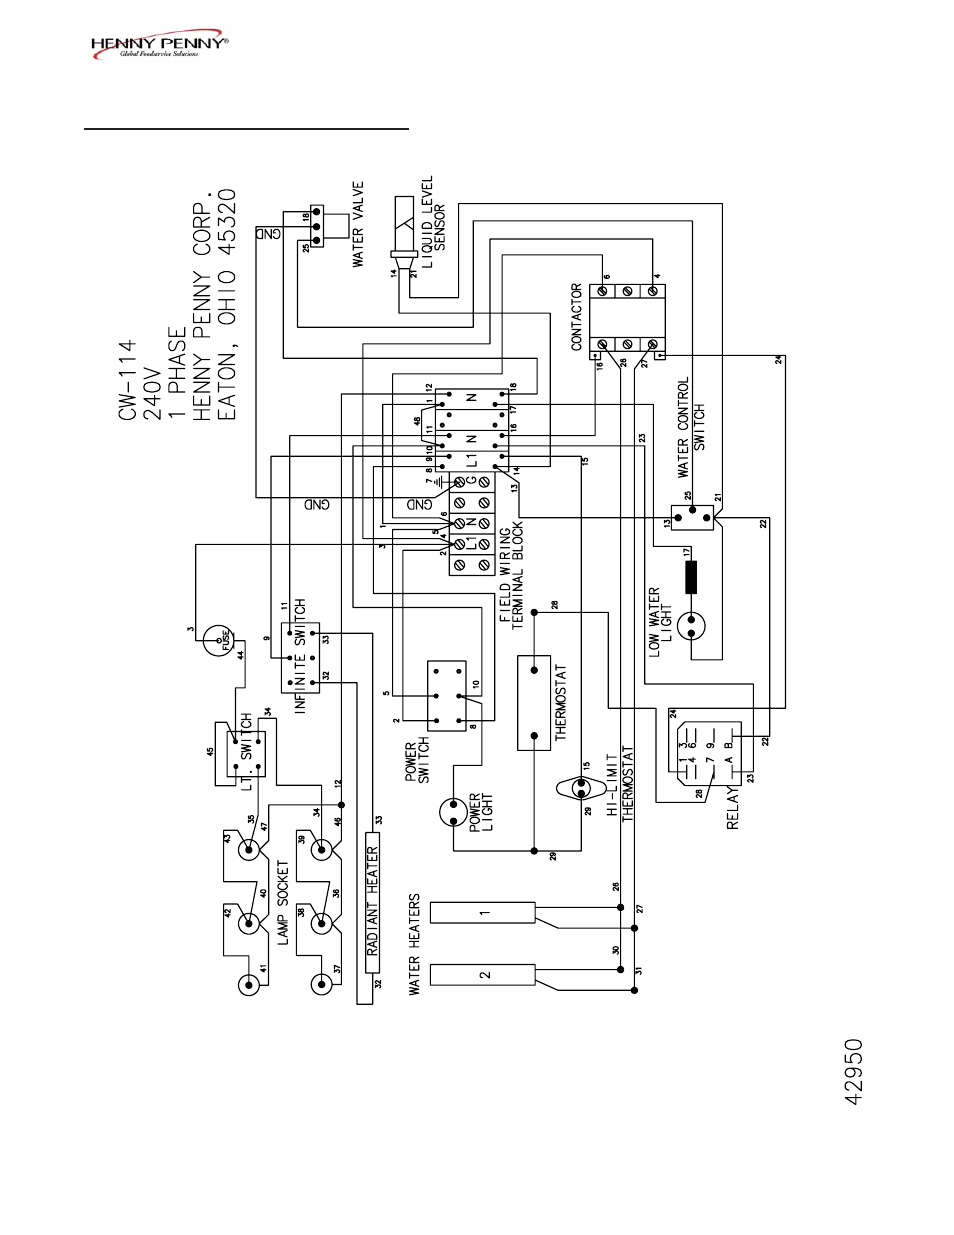 Henny Penny Wiring Diagram Free Download Fenwal Ignition Module 35 655921 001 Cw 114 User Manual Page 31 41 Also For 216